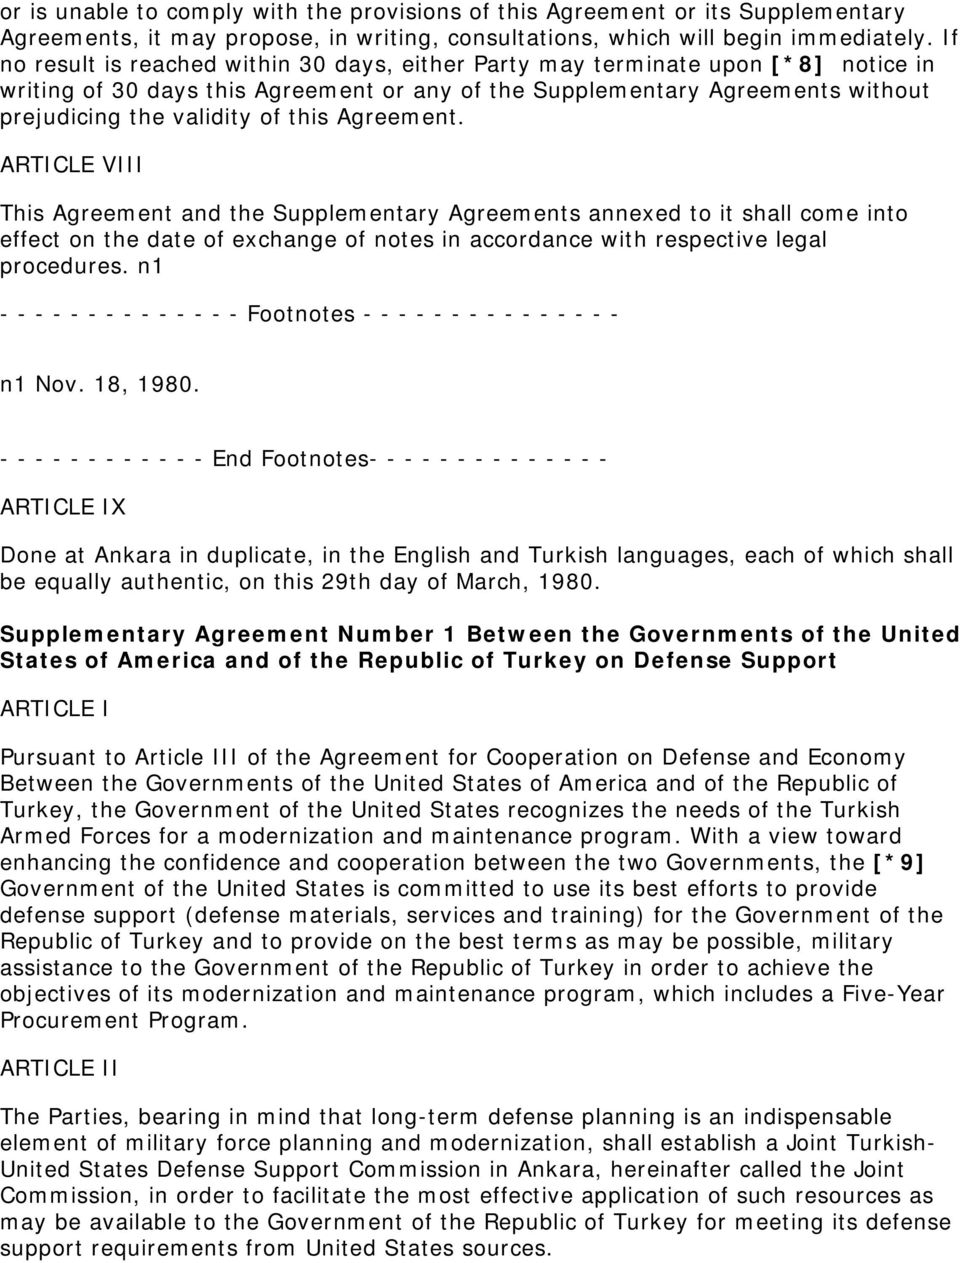 this Agreement. ARTICLE VIII This Agreement and the Supplementary Agreements annexed to it shall come into effect on the date of exchange of notes in accordance with respective legal procedures.